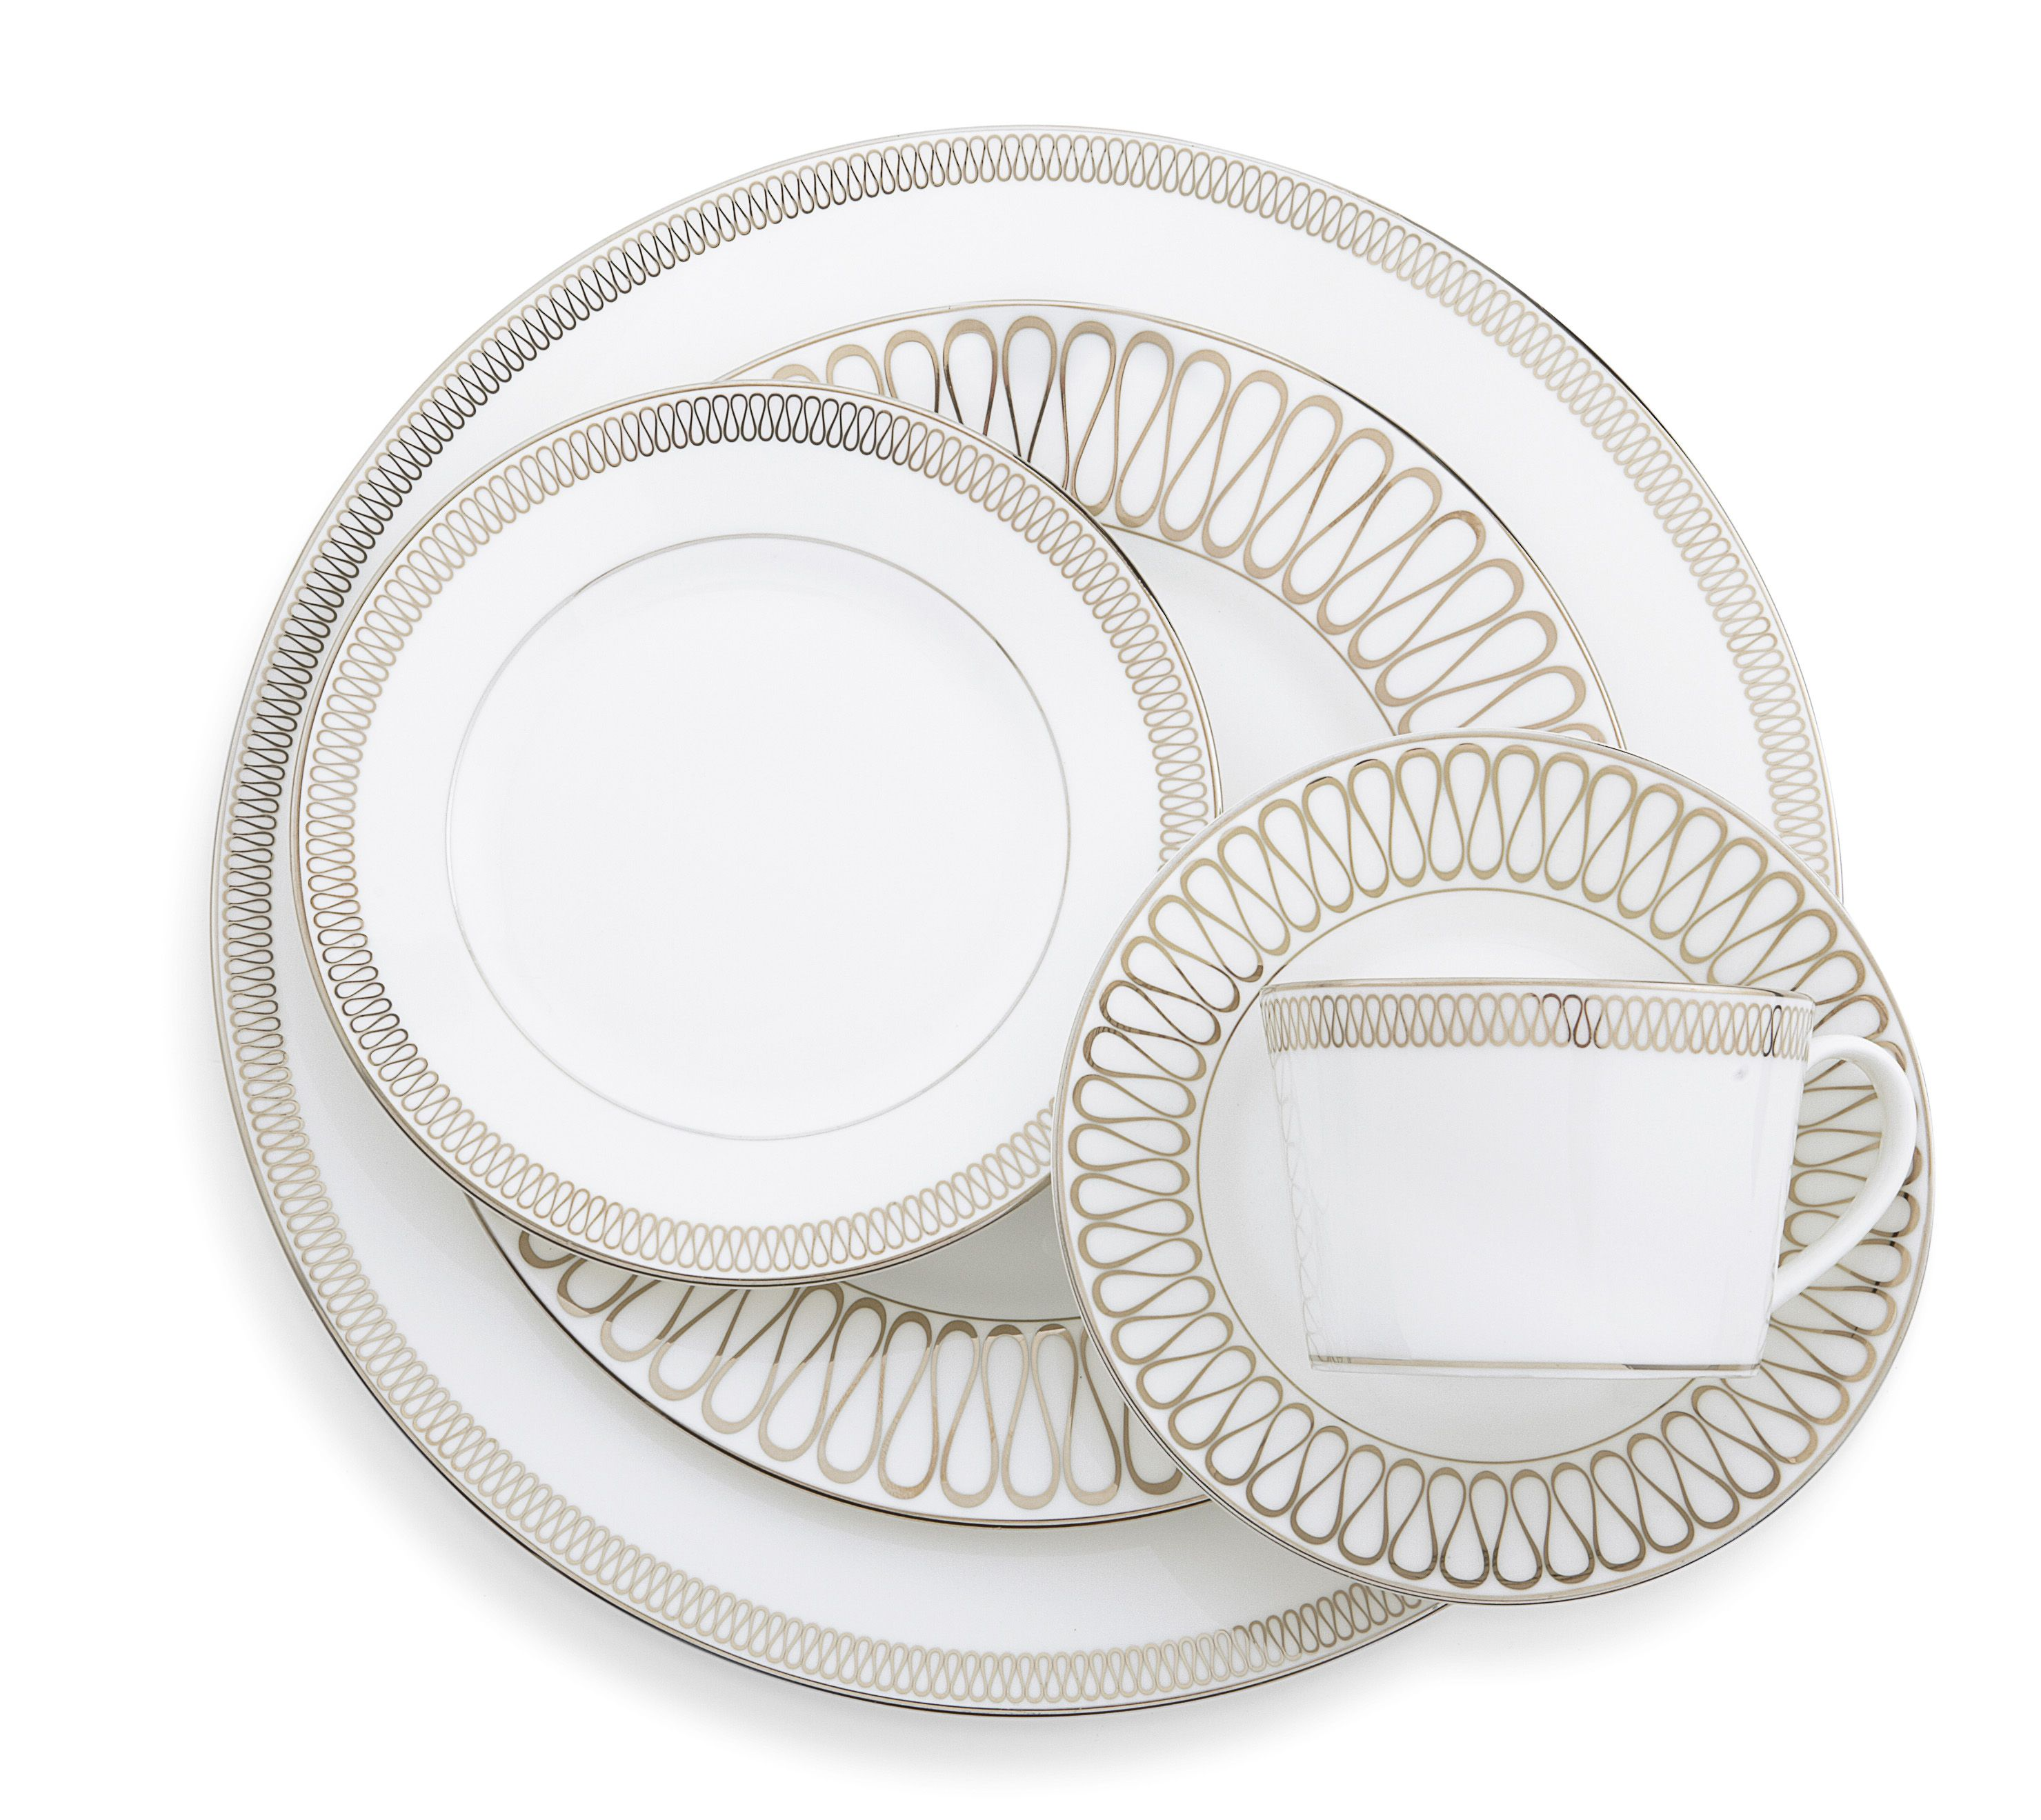 The @m_lhuillier Waterford Opulence dinnerware redefines classic bone china with a contemporary sparkle.